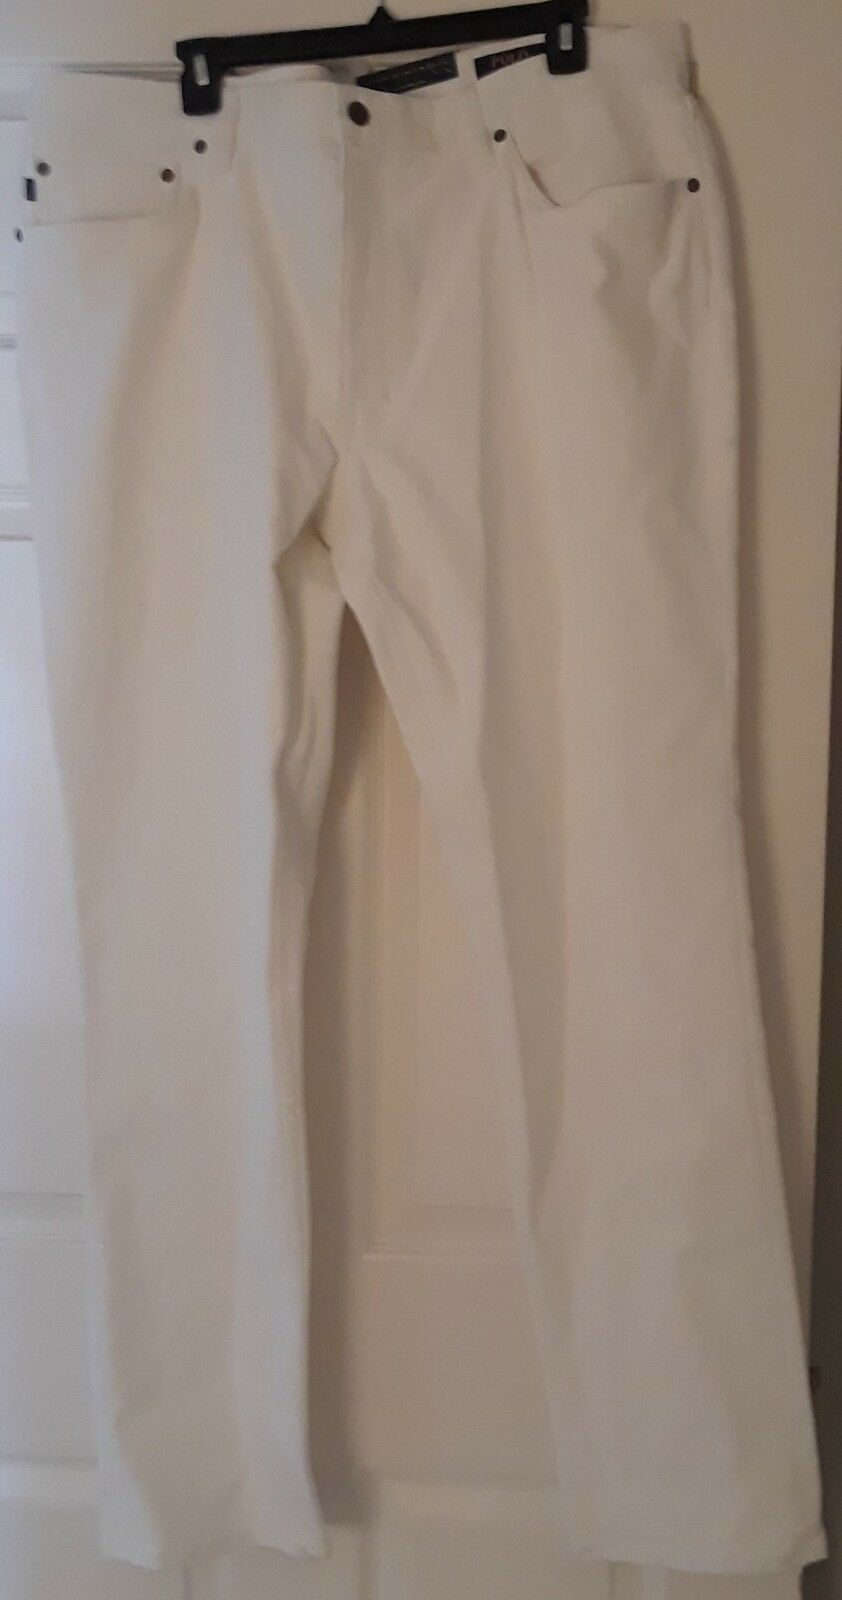 NWT RALPH LAUREN MEN STRETCH SLIM FIT WINTER CREAM CORDUROY PANTS 42-30